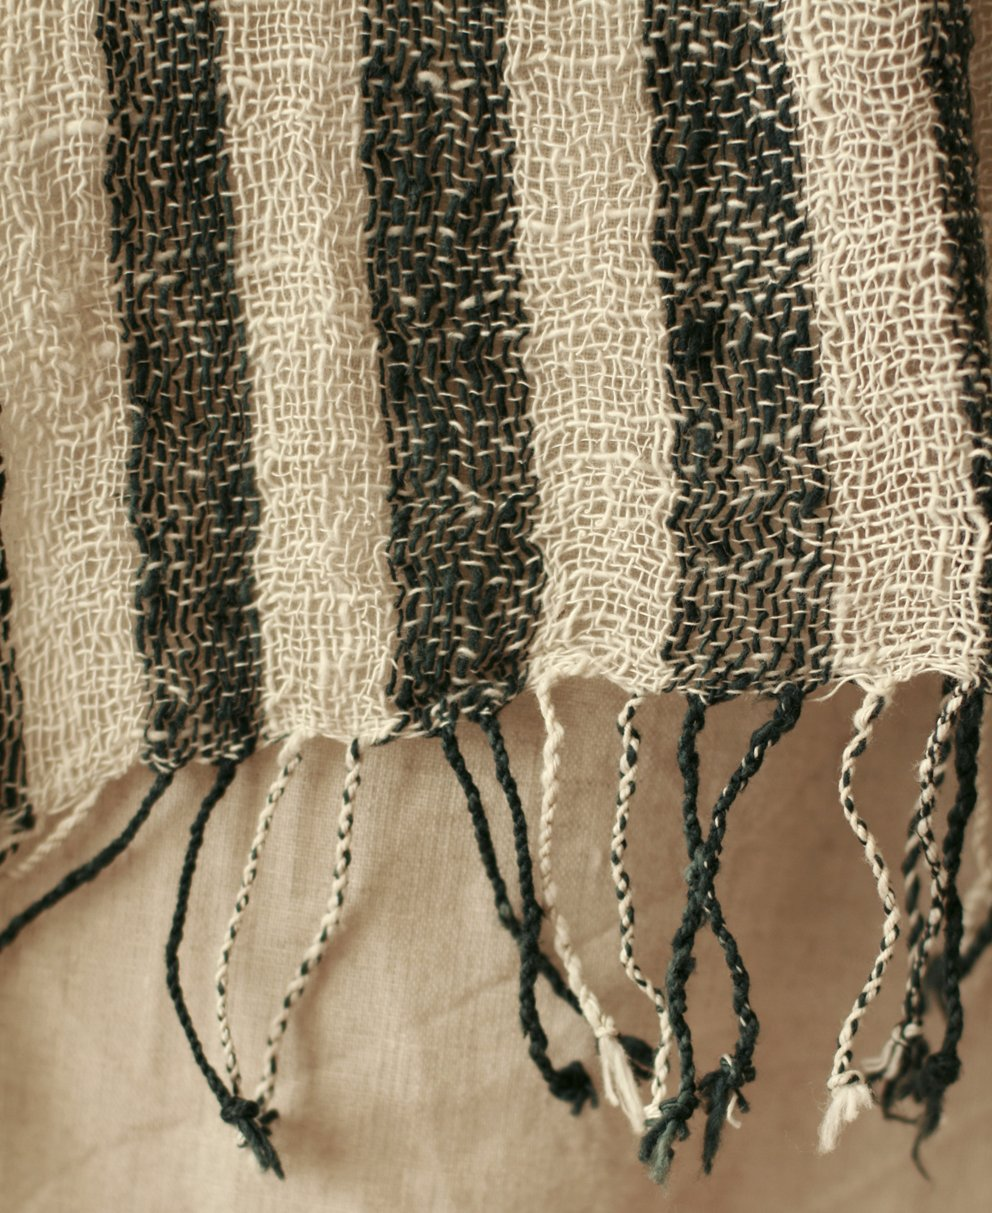 Fatima Hand-loomed Raw Cotton Scarf in Black